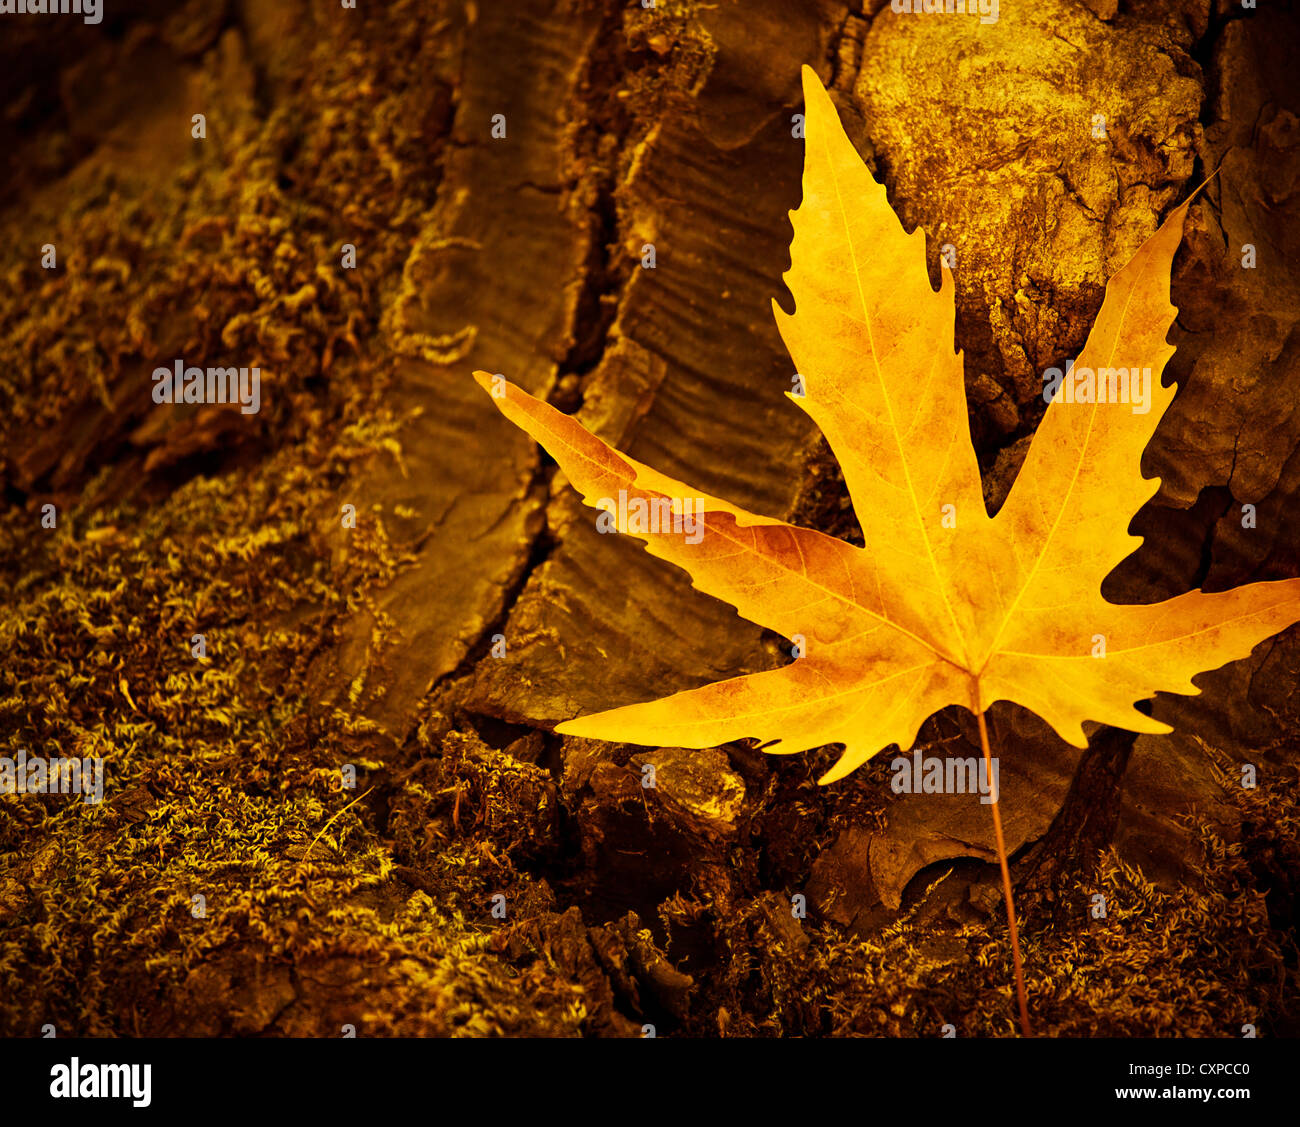 Picture of dry maple leaf on old dark tree trunk, autumn leaves background, yellow autumnal leaves on stump in woods - Stock Image